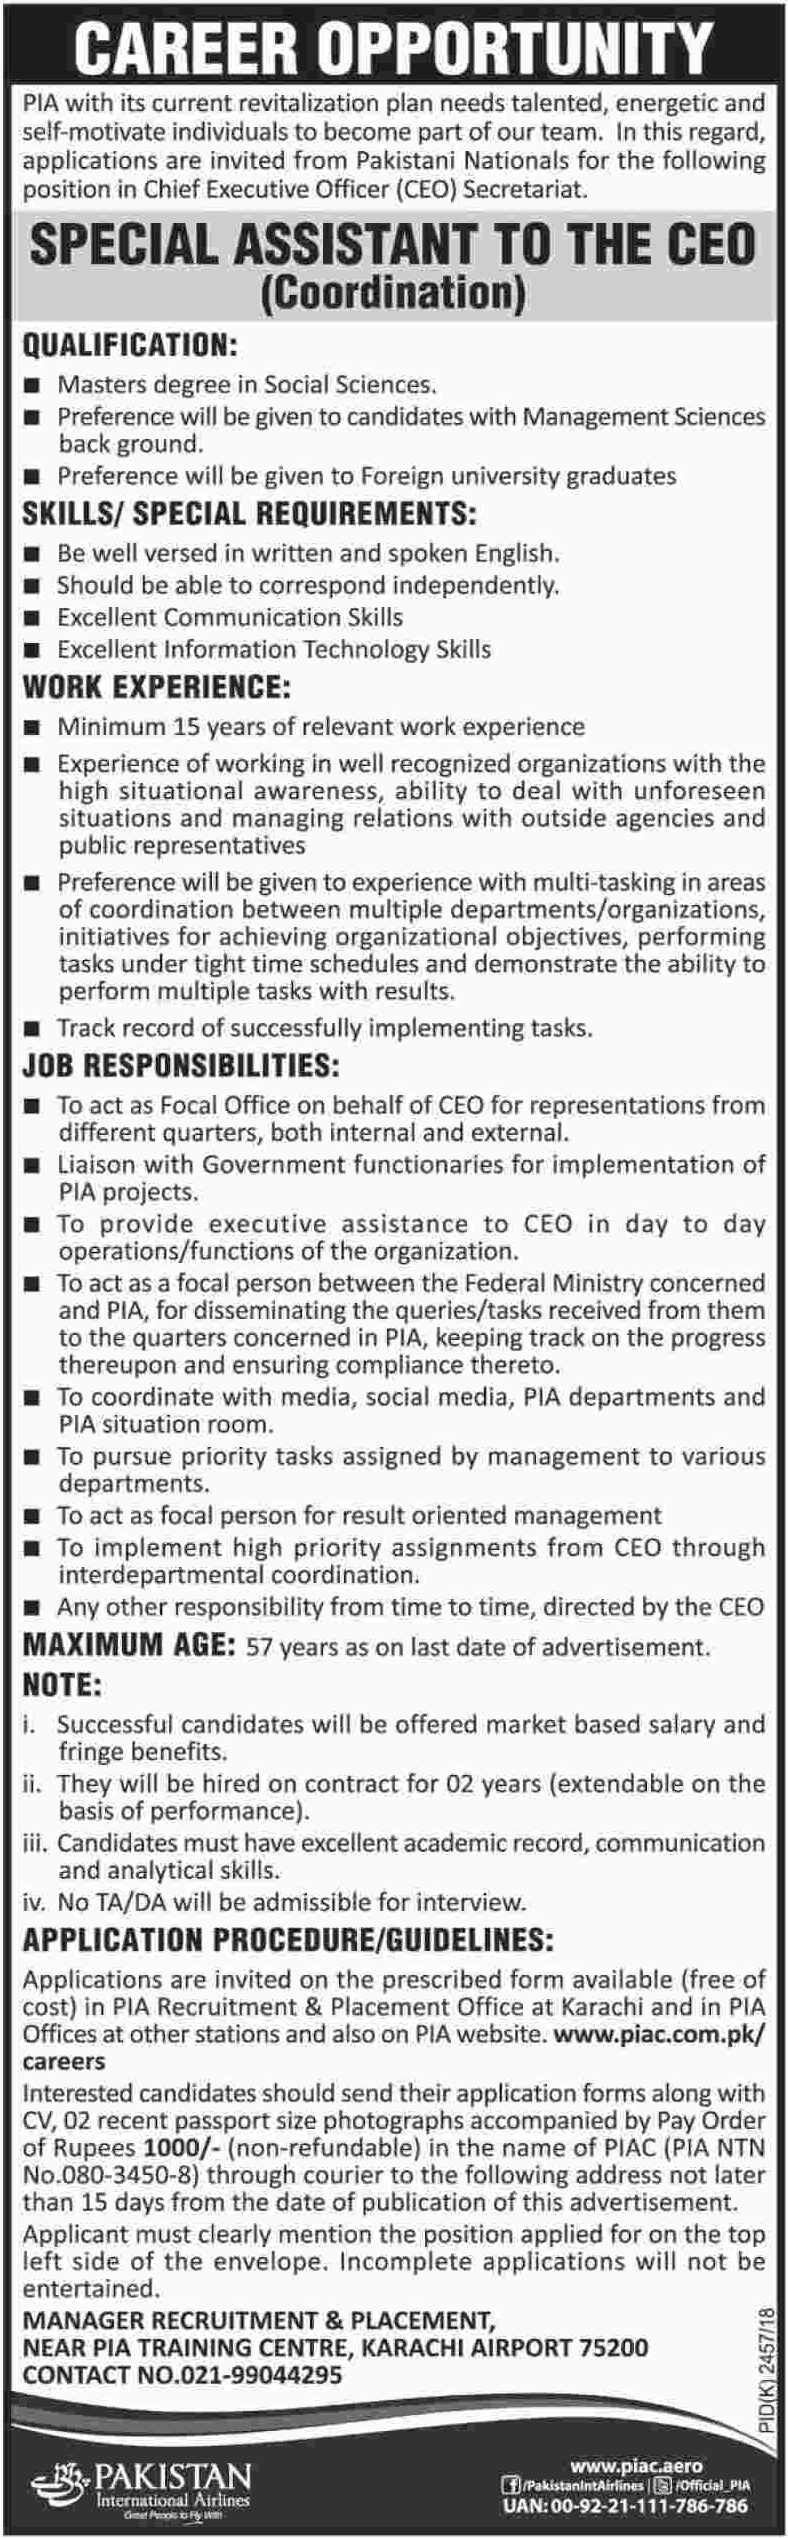 PIA Jobs for Special Assistant to the CEO